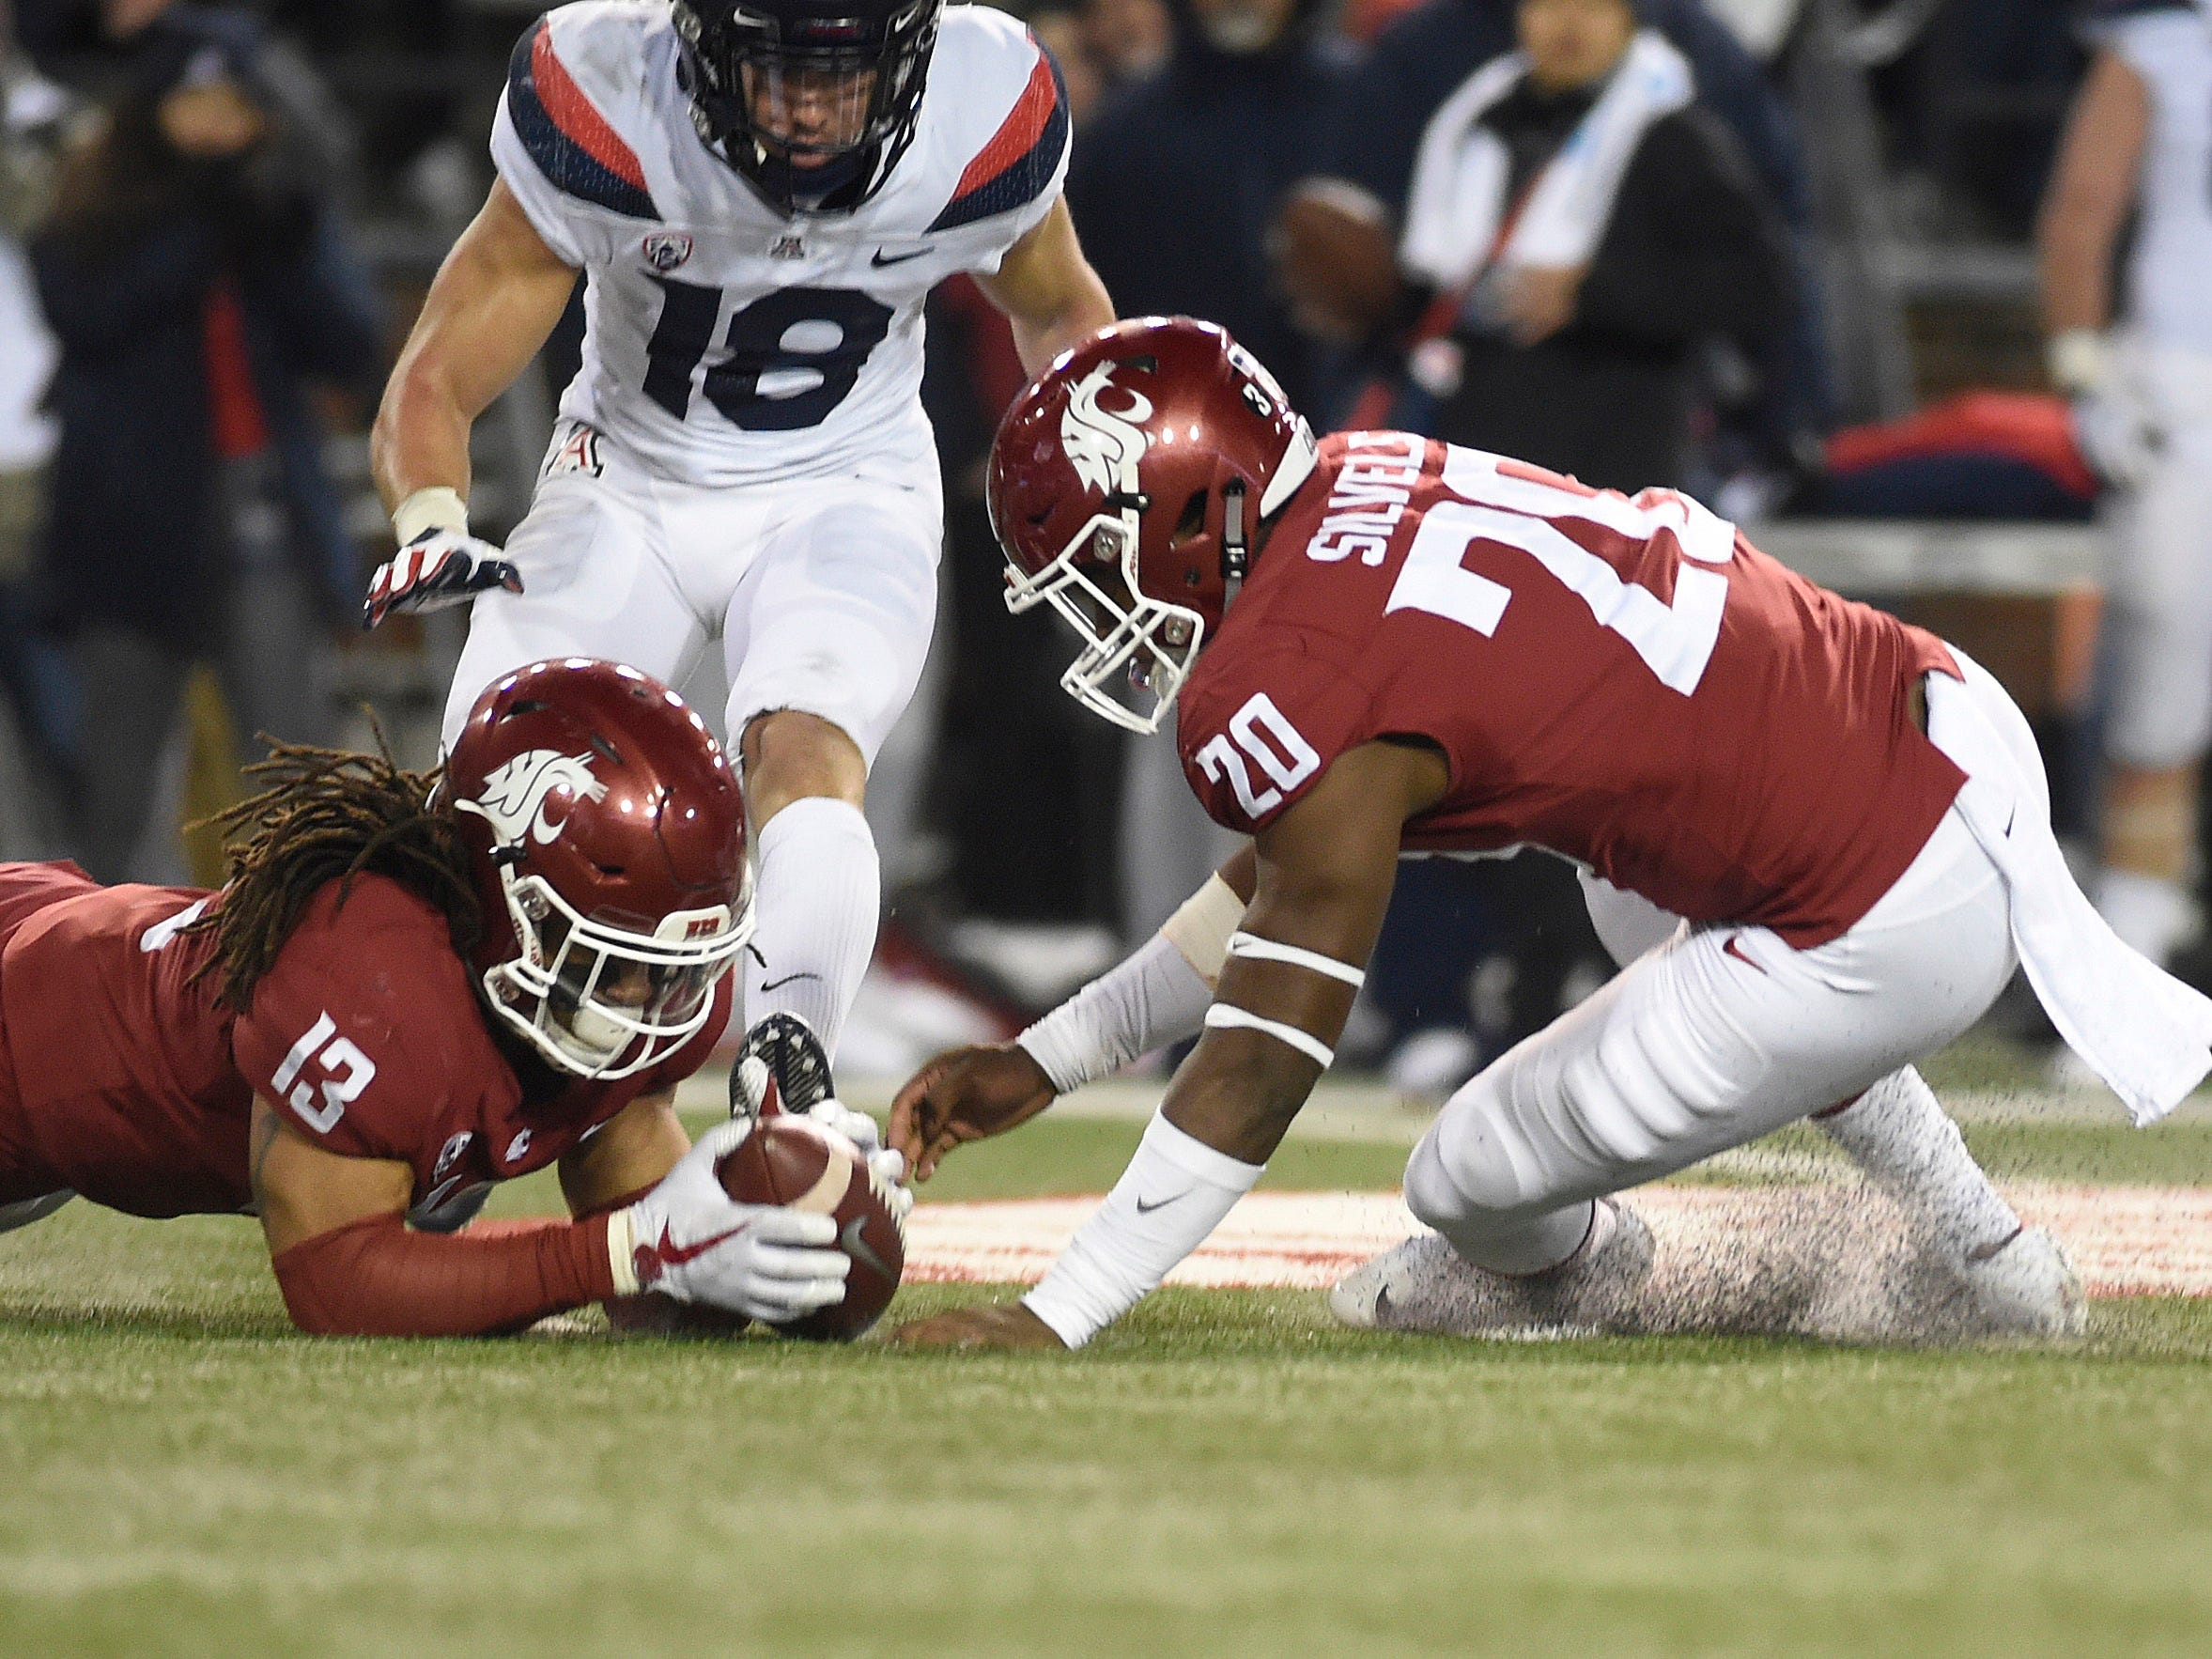 Nov 17, 2018; Pullman, WA, USA; Washington State Cougars linebacker Jahad Woods (13) recovers the fumble against Arizona Wildcats wide receiver Cedric Peterson (18) in the second half at Martin Stadium. Mandatory Credit: James Snook-USA TODAY Sports